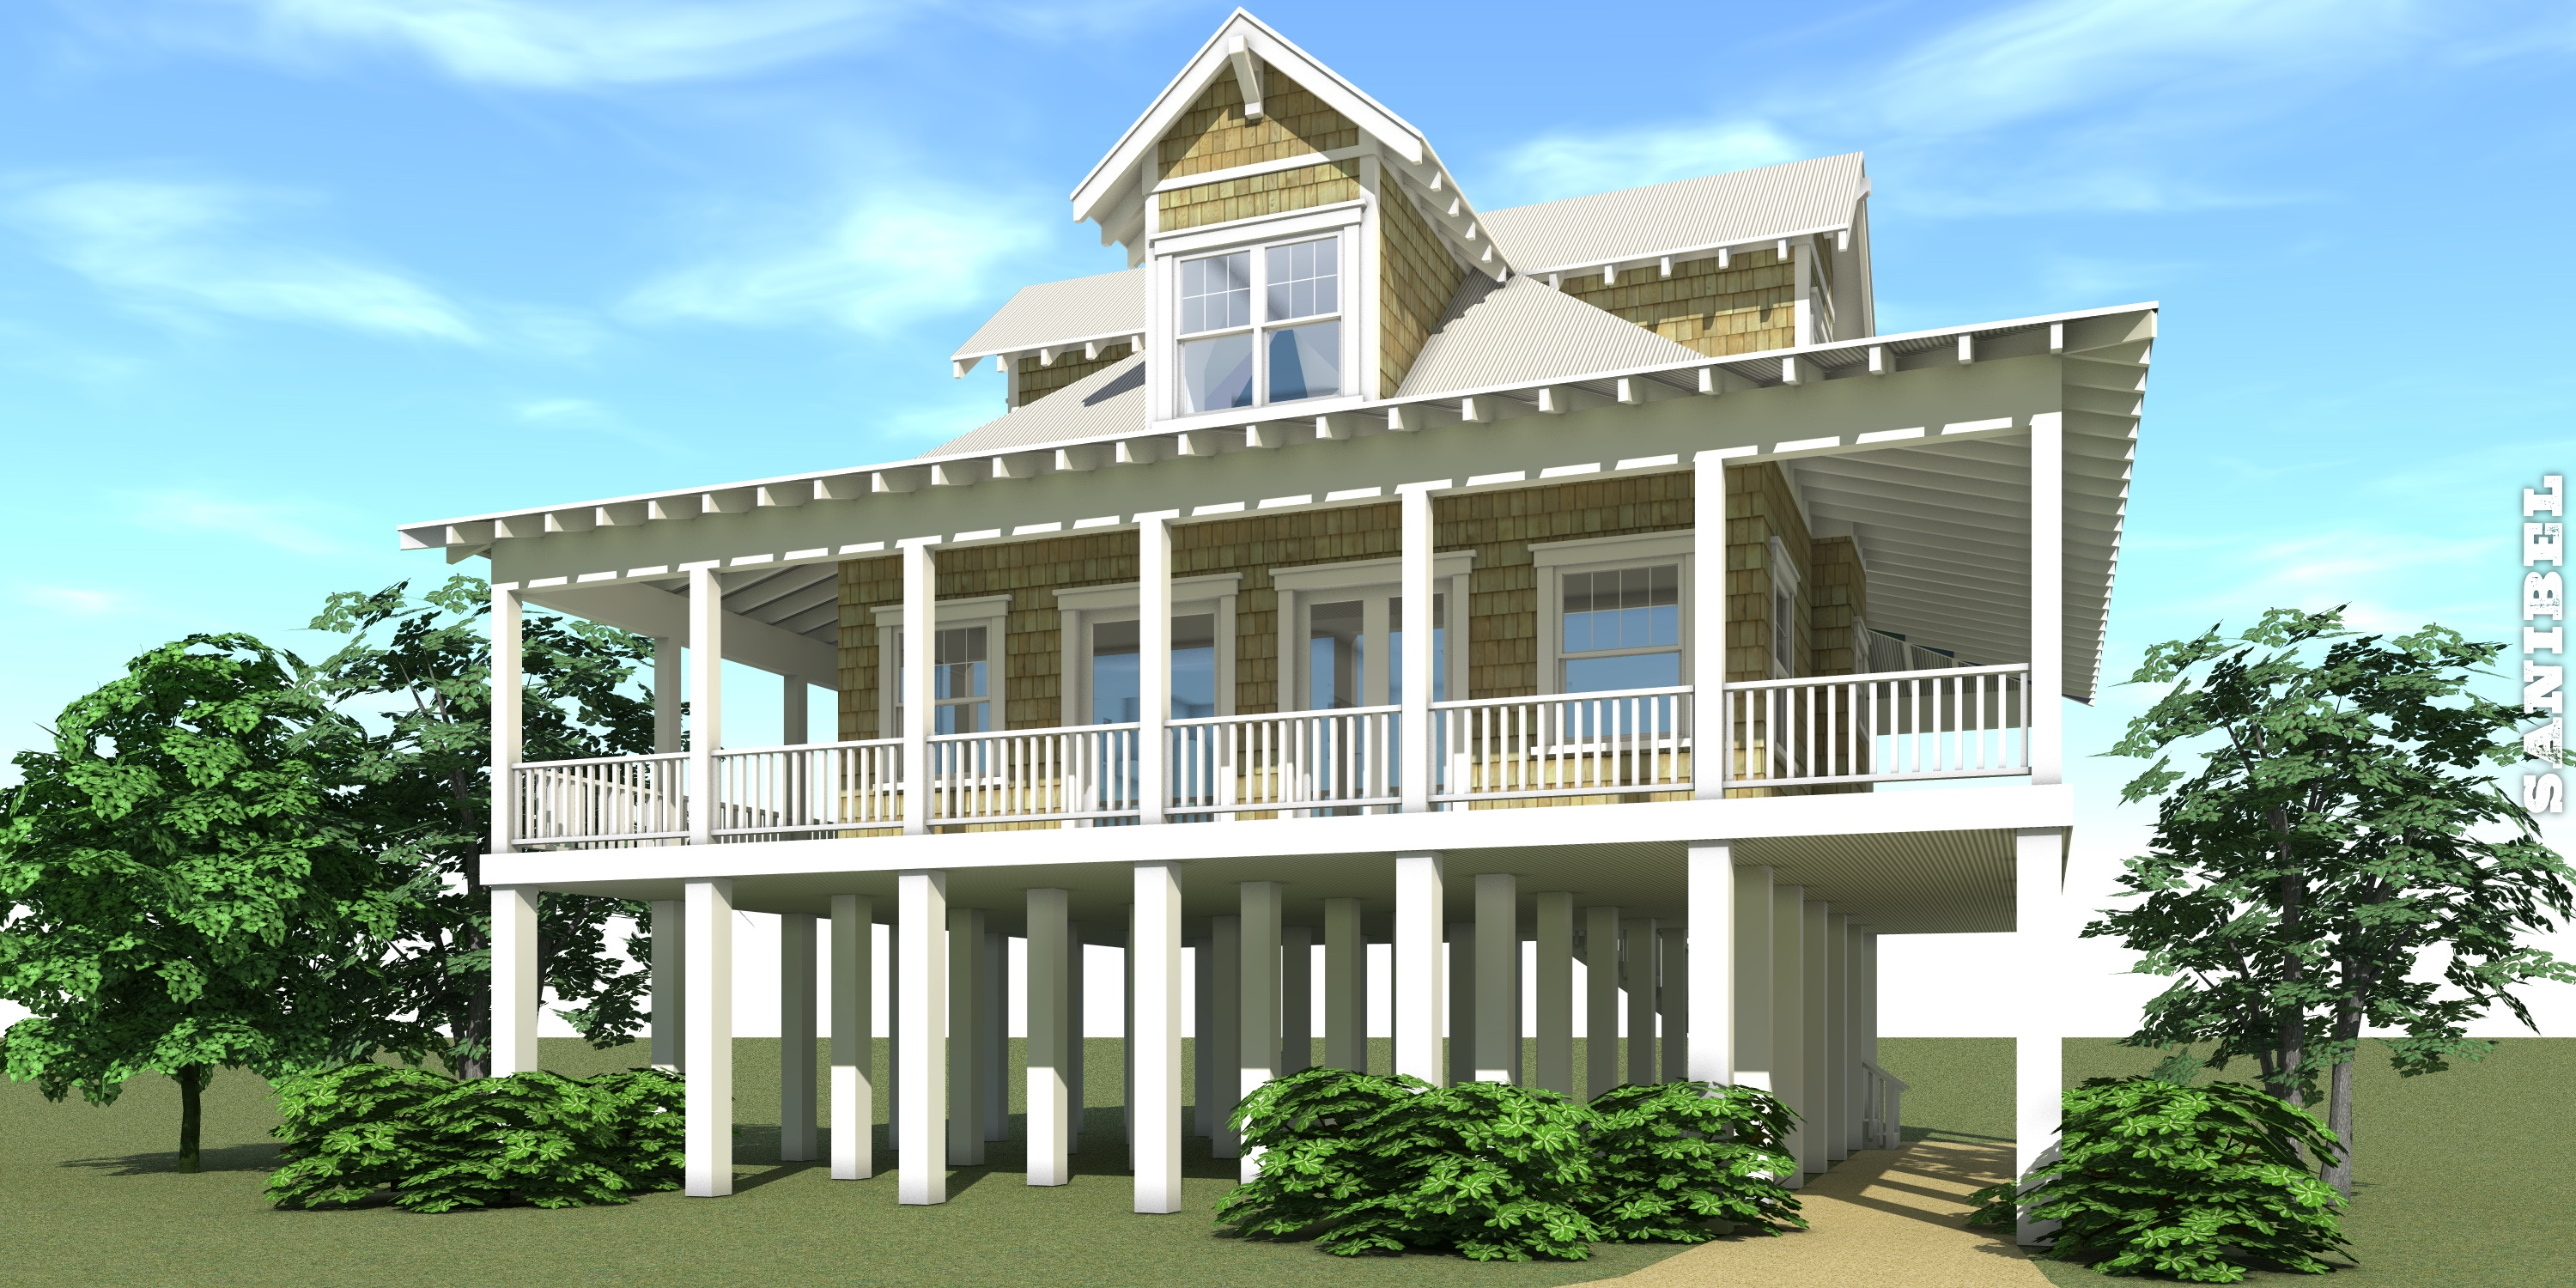 2 bedrm 1527 sq ft coastal house plan 116 1043 for Coastal house plans